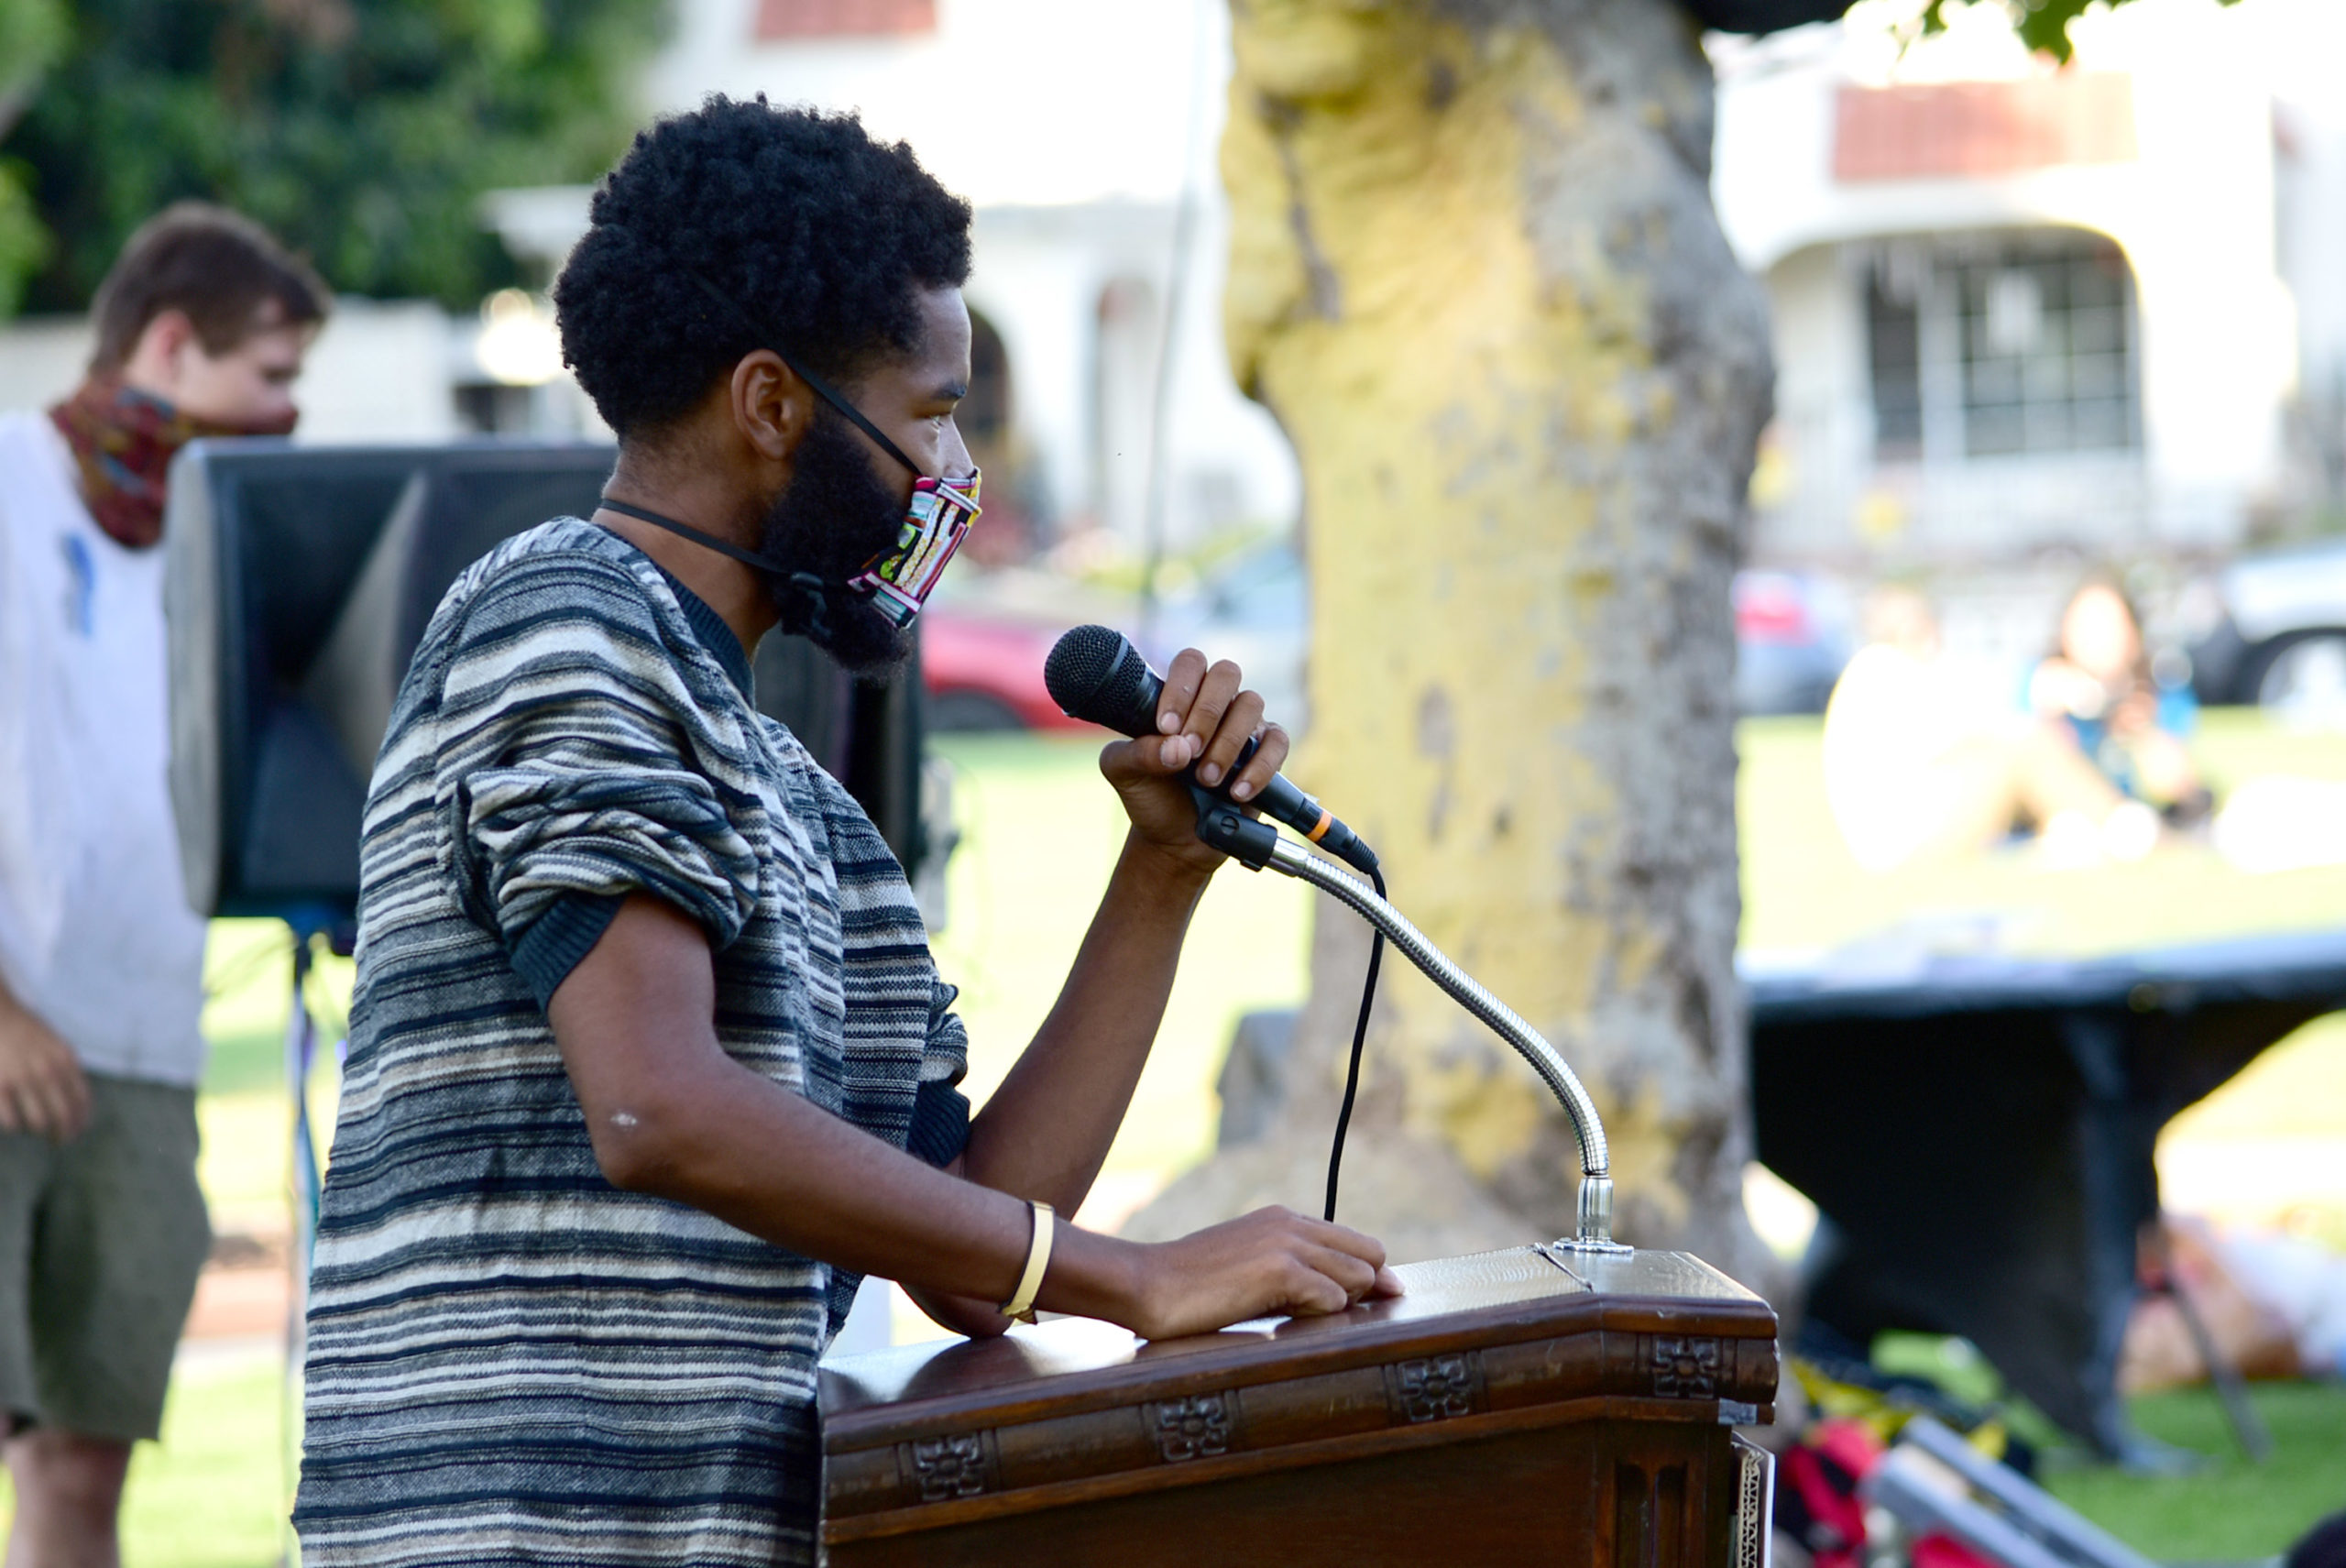 south-pasadena-news-06-25-2020-tamir-rice-vigil-memorial-sp-youth-police-reform-garfield-park-03